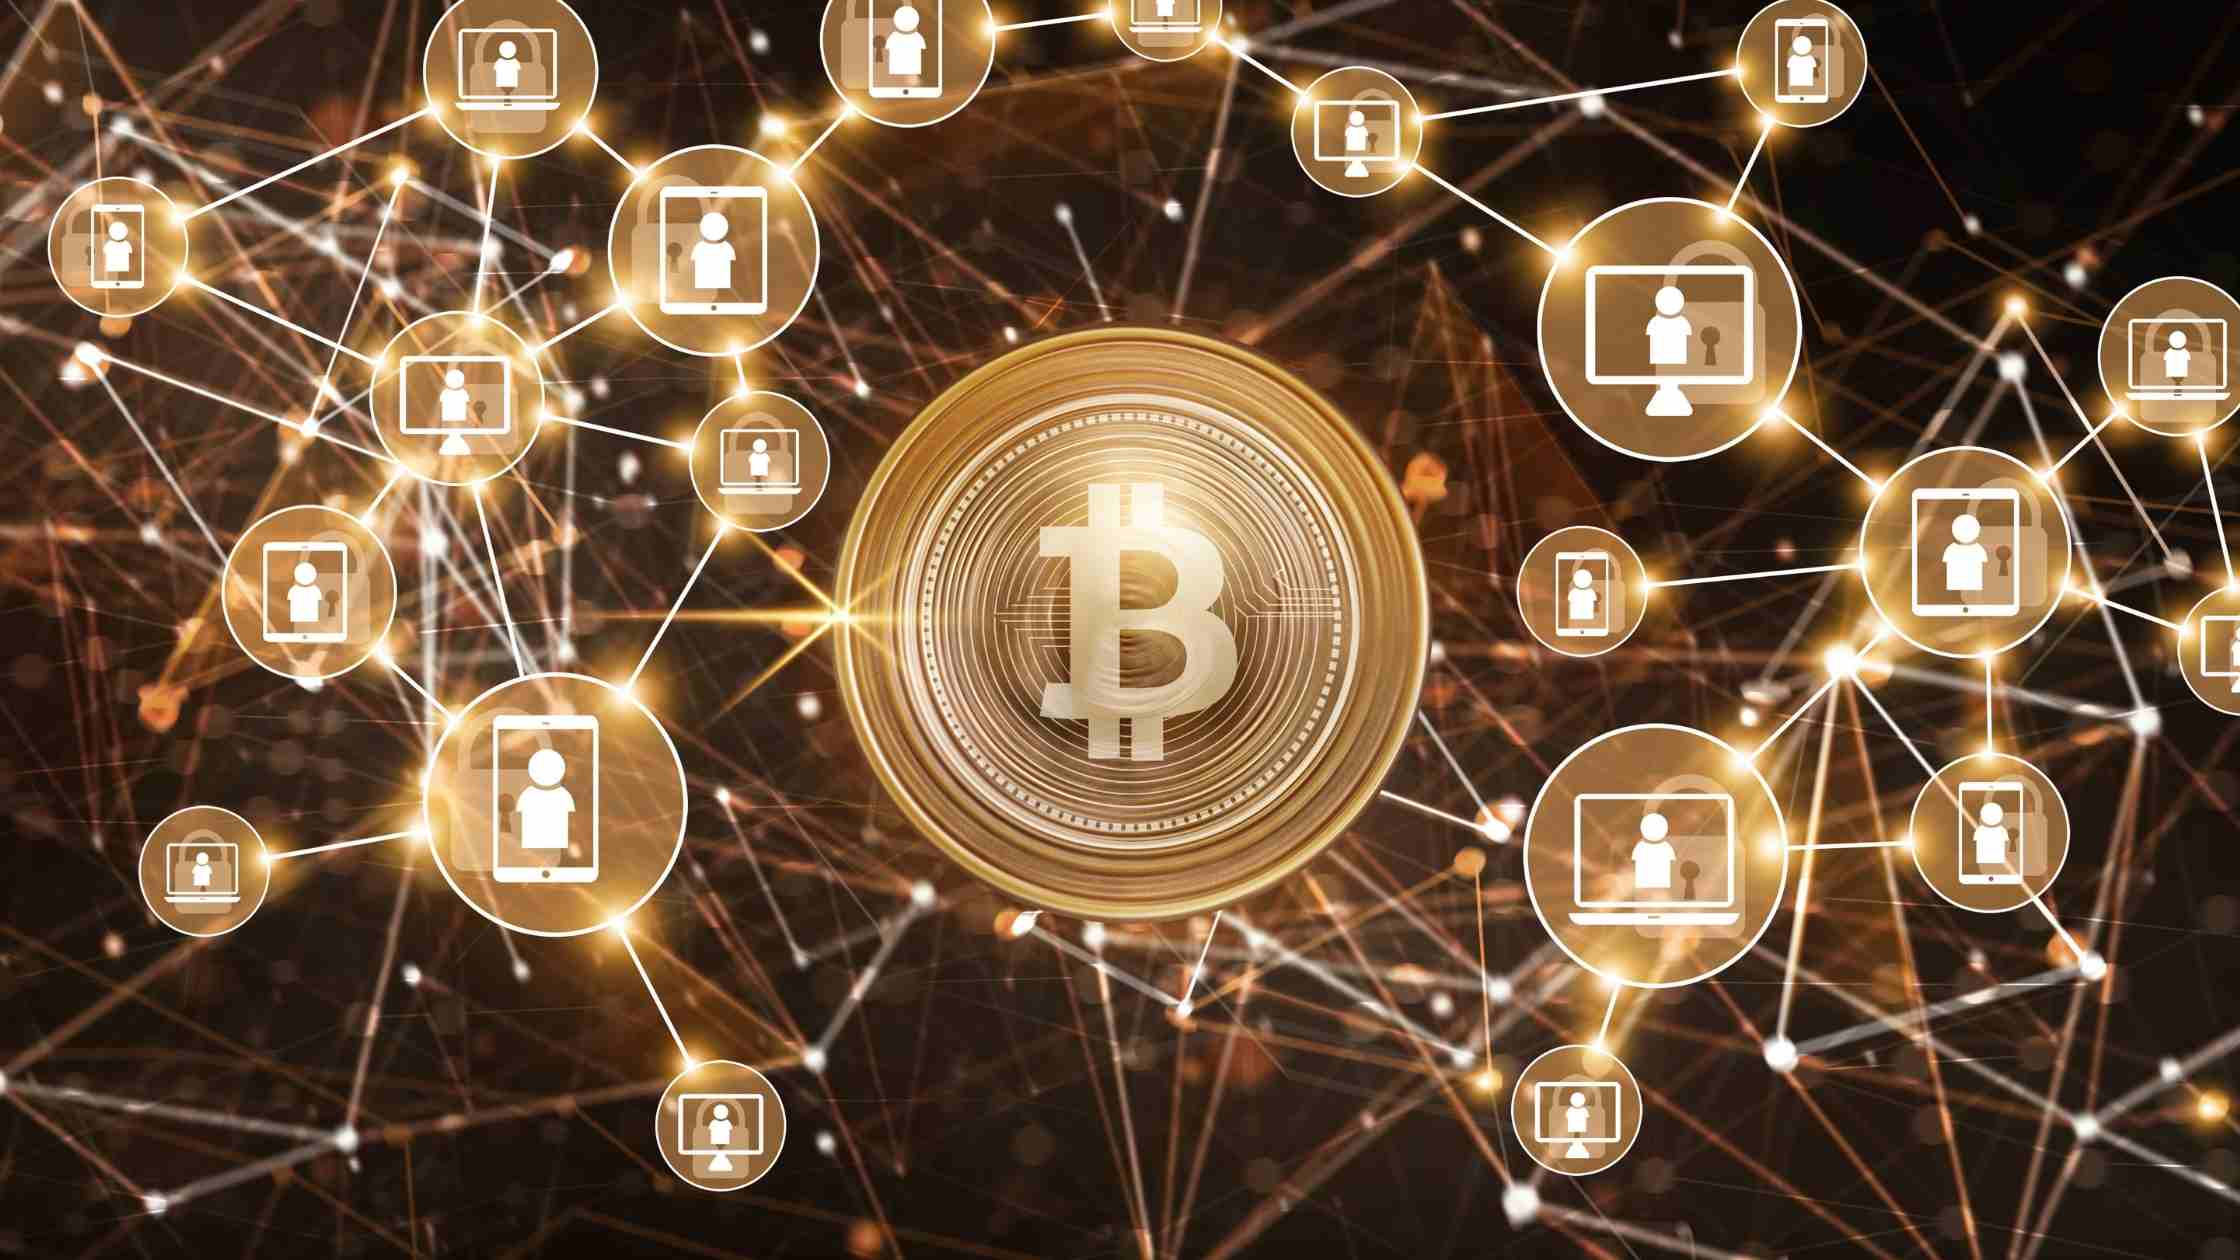 Bitcoin - on the rise or falling?